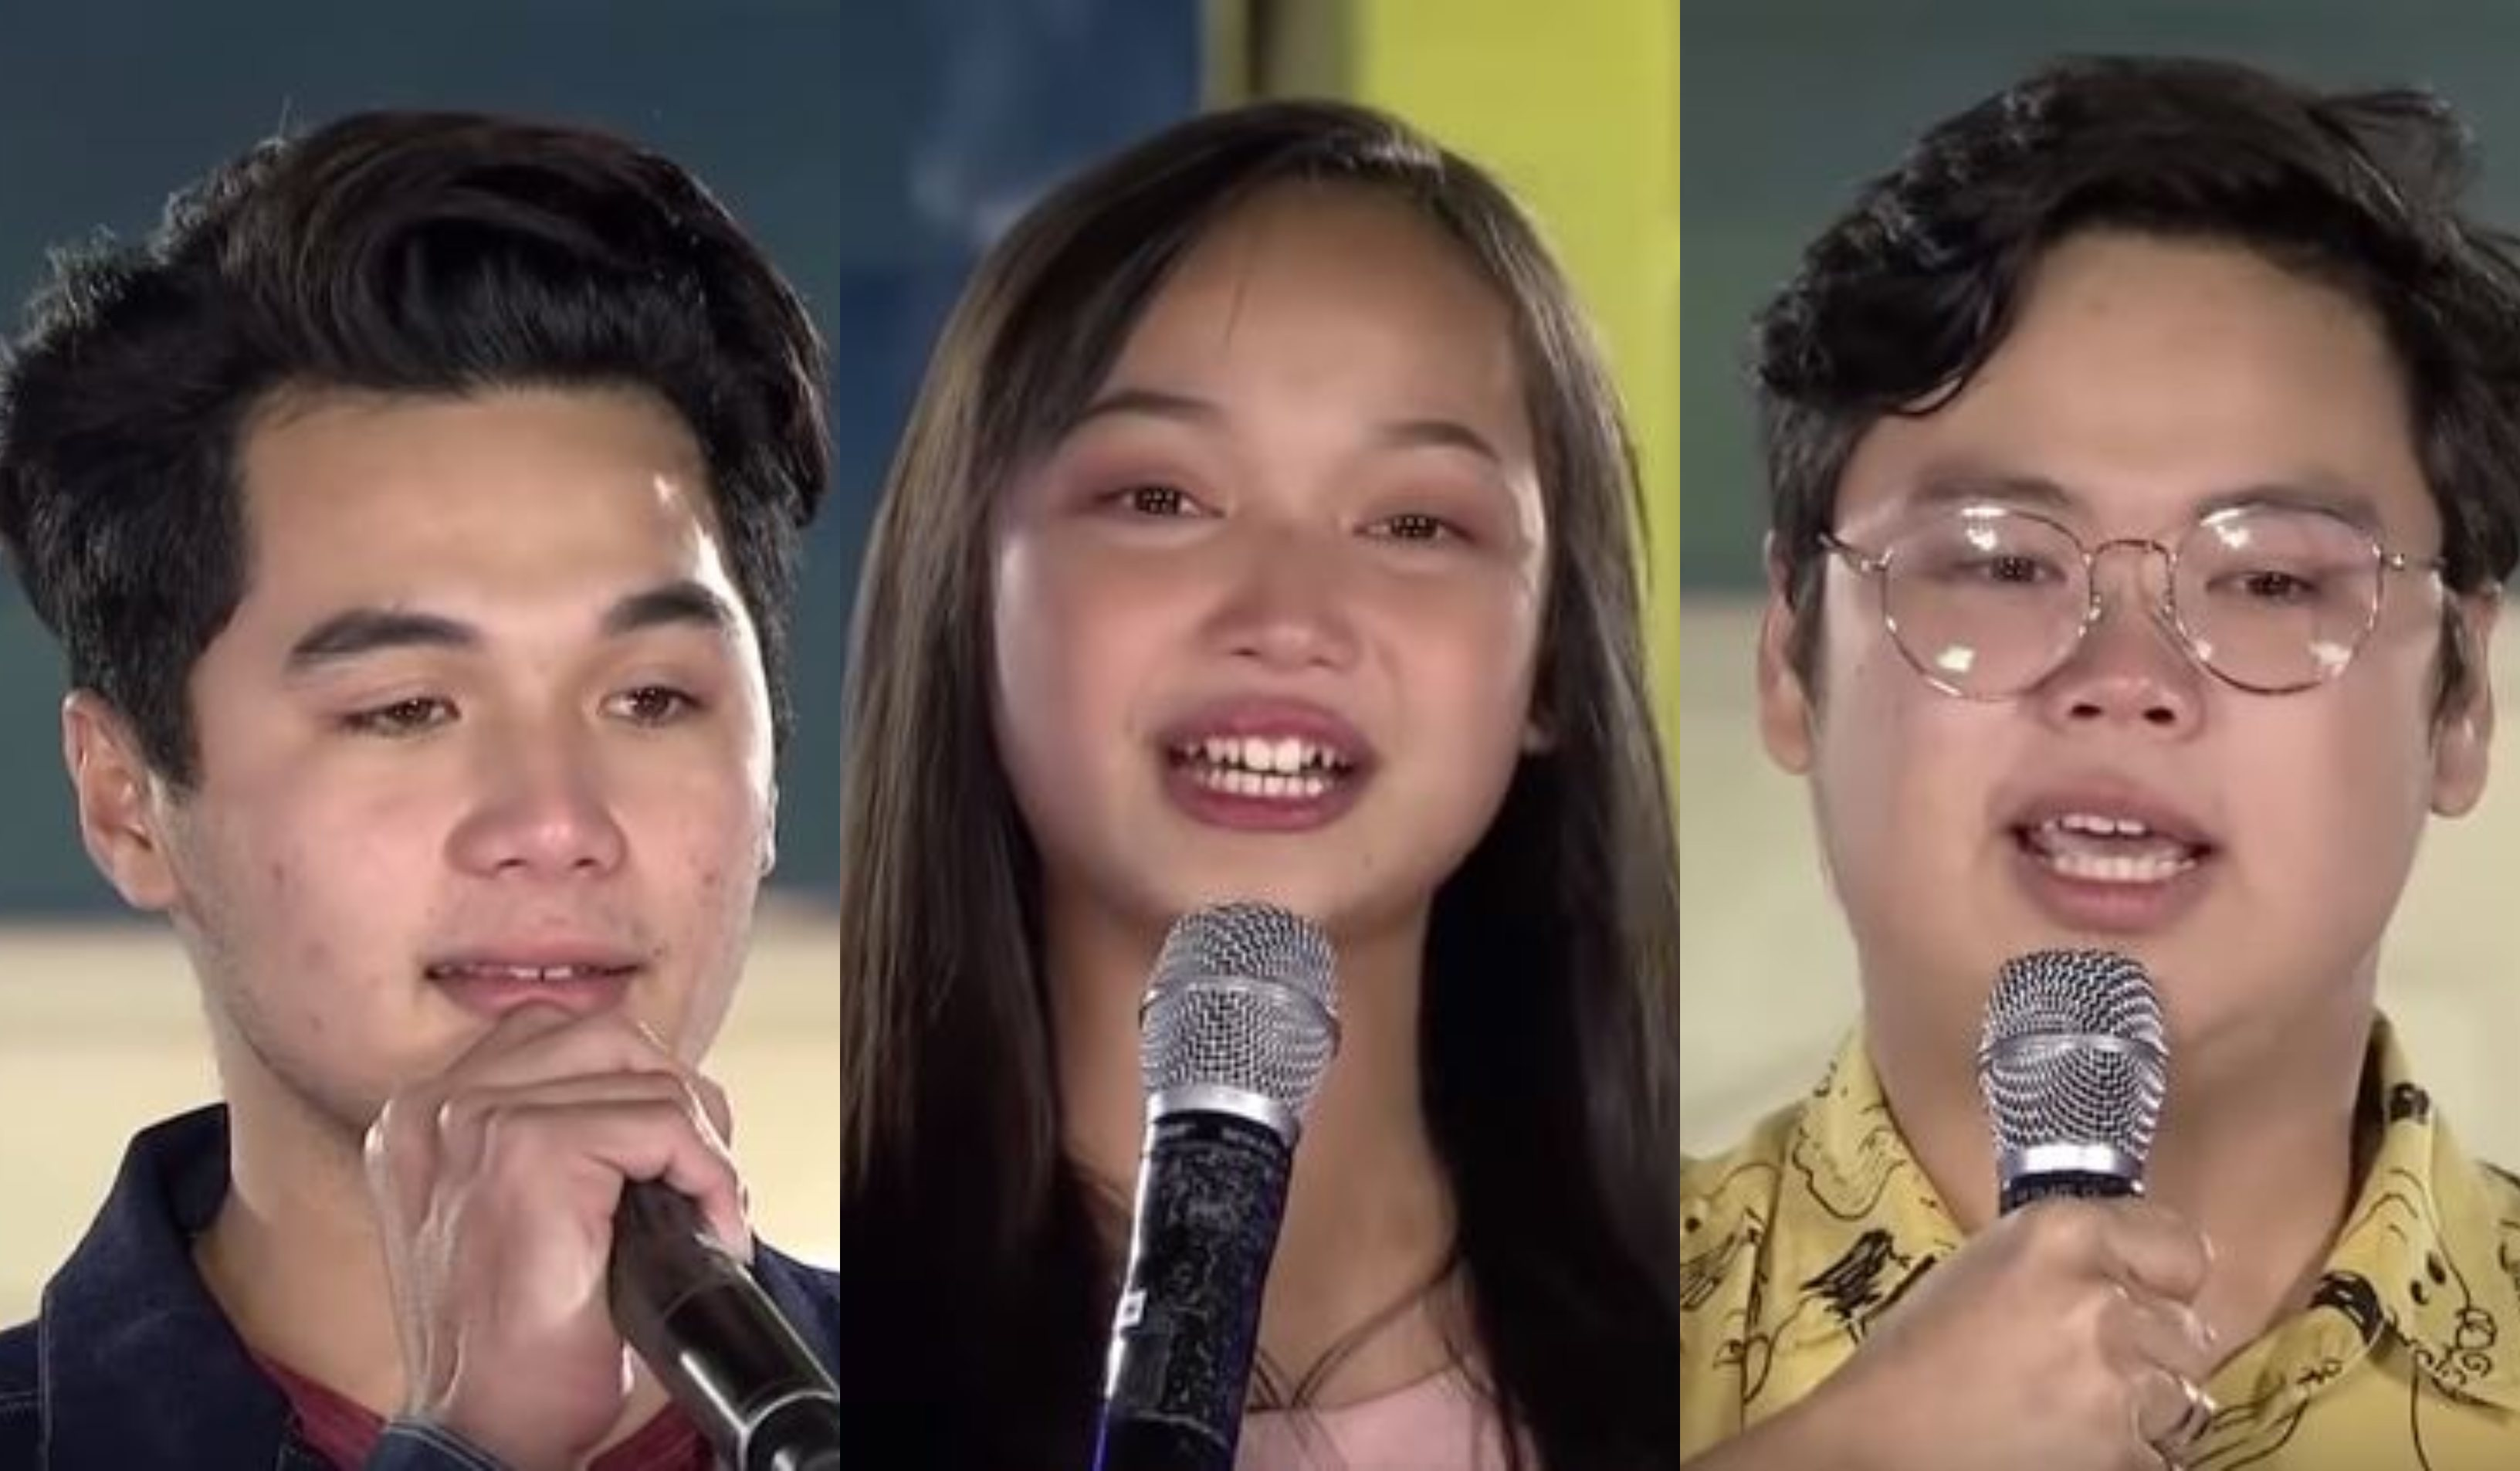 Gwen, Jem and Alfred evicted in 'PBB Otso'